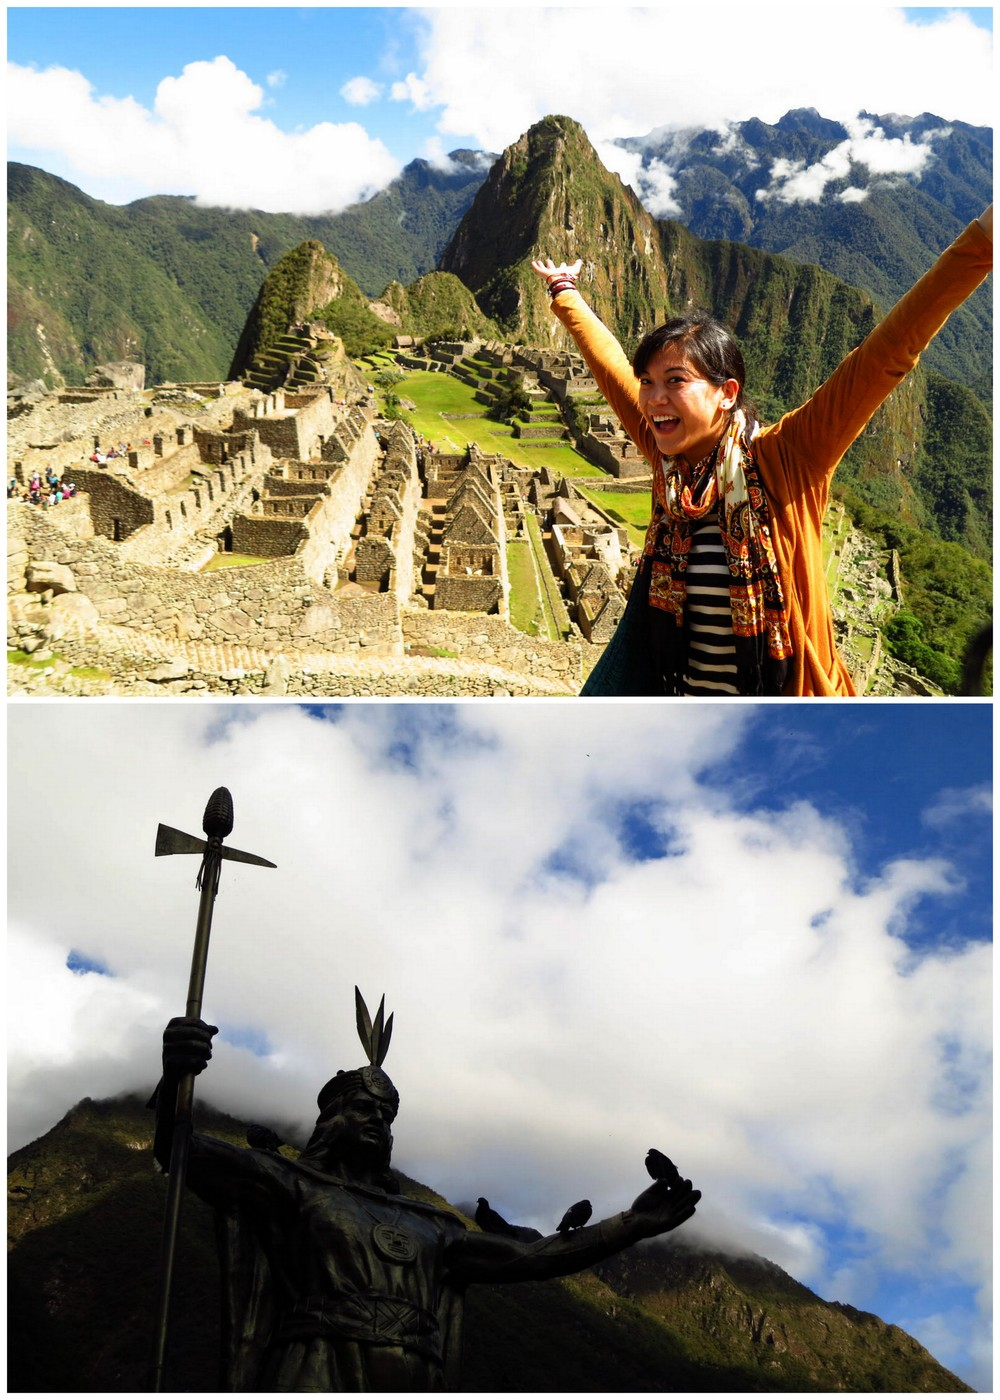 I made it to Machu Picchu!